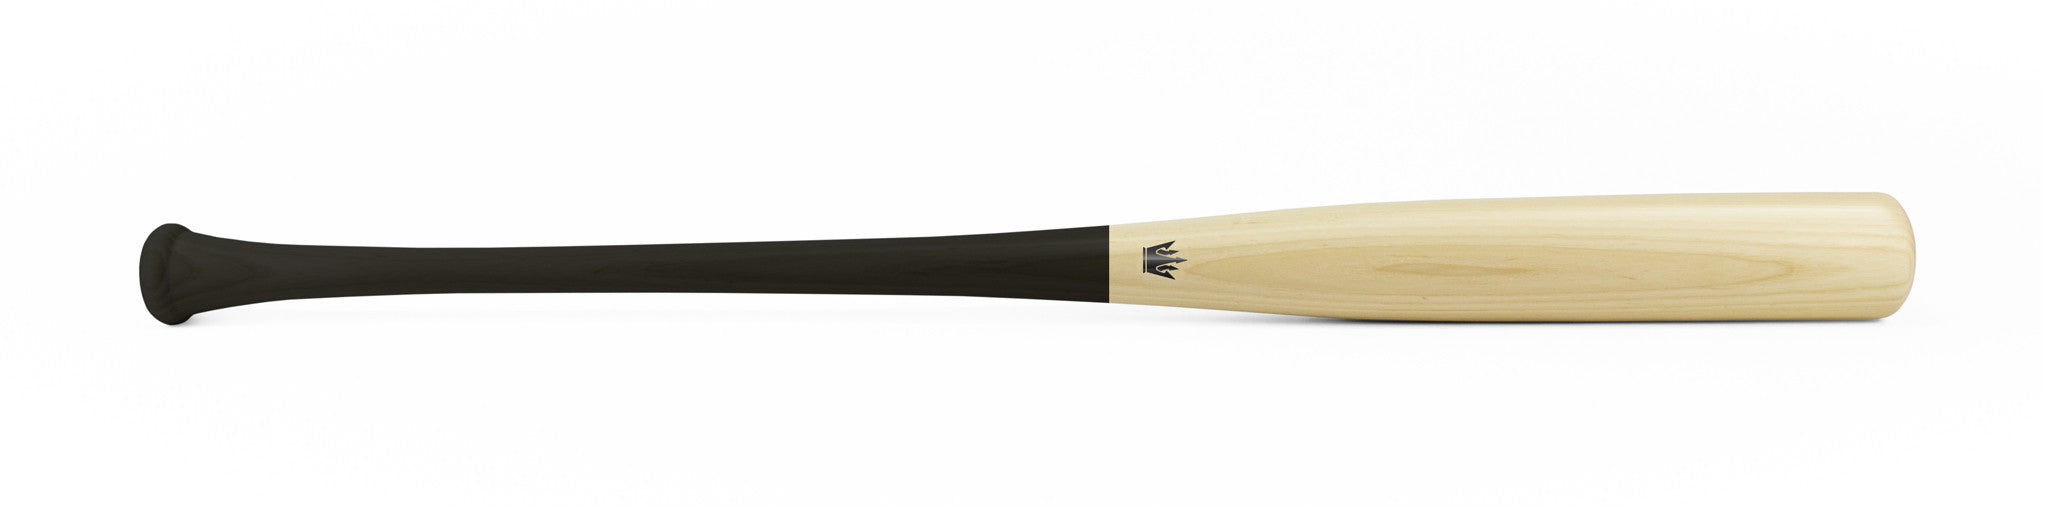 Wood bat - Ash model D25 Black Dip - 27